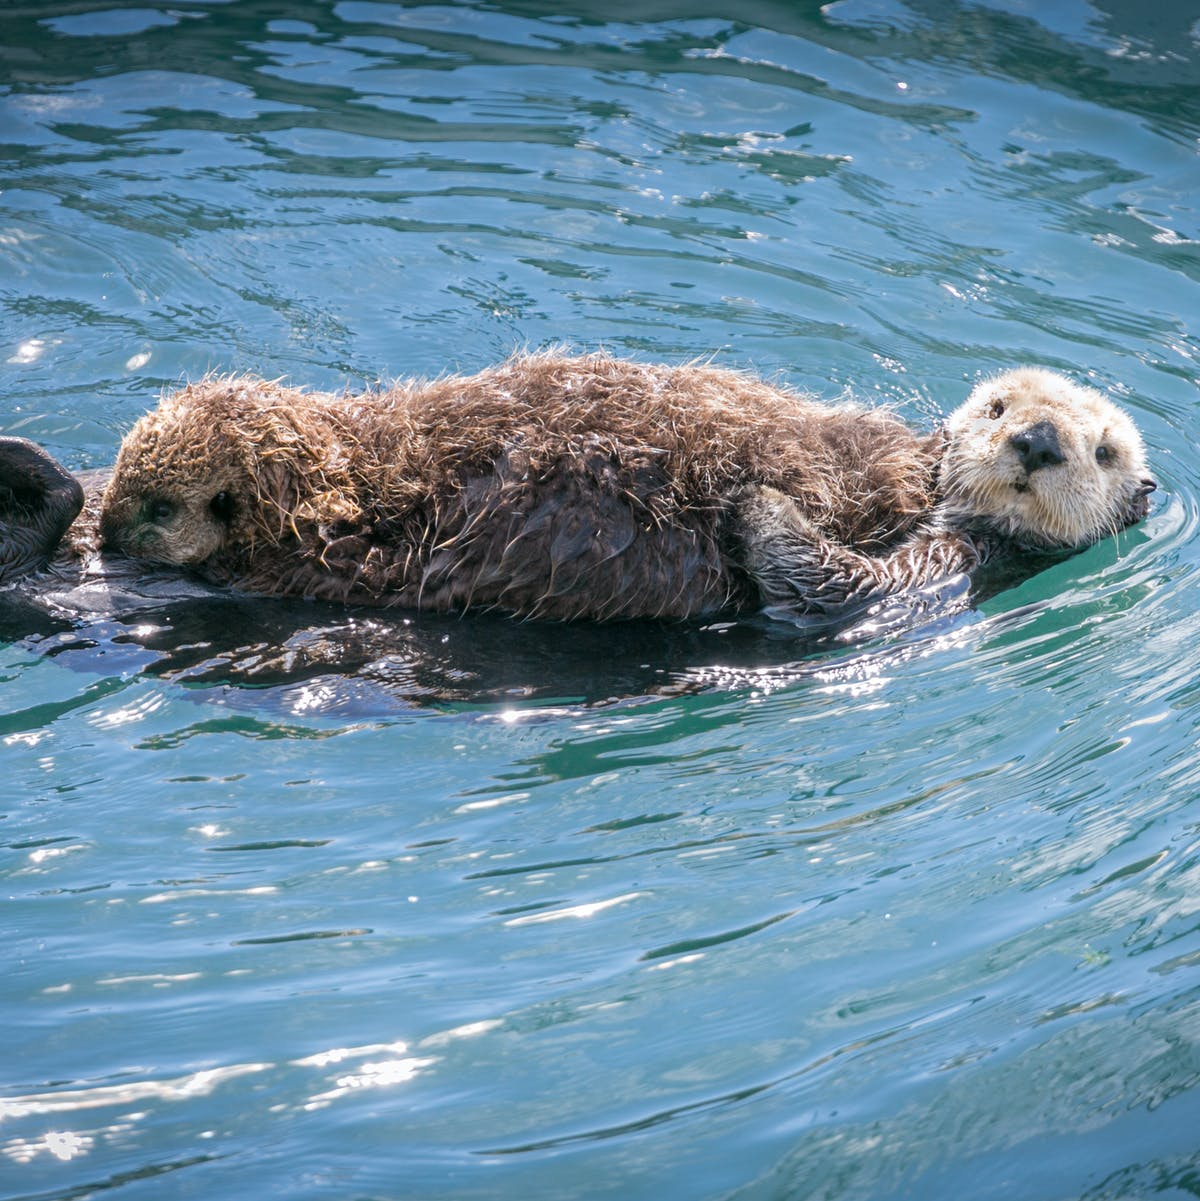 Sea otters are cute as heck, but they have an even more important quality